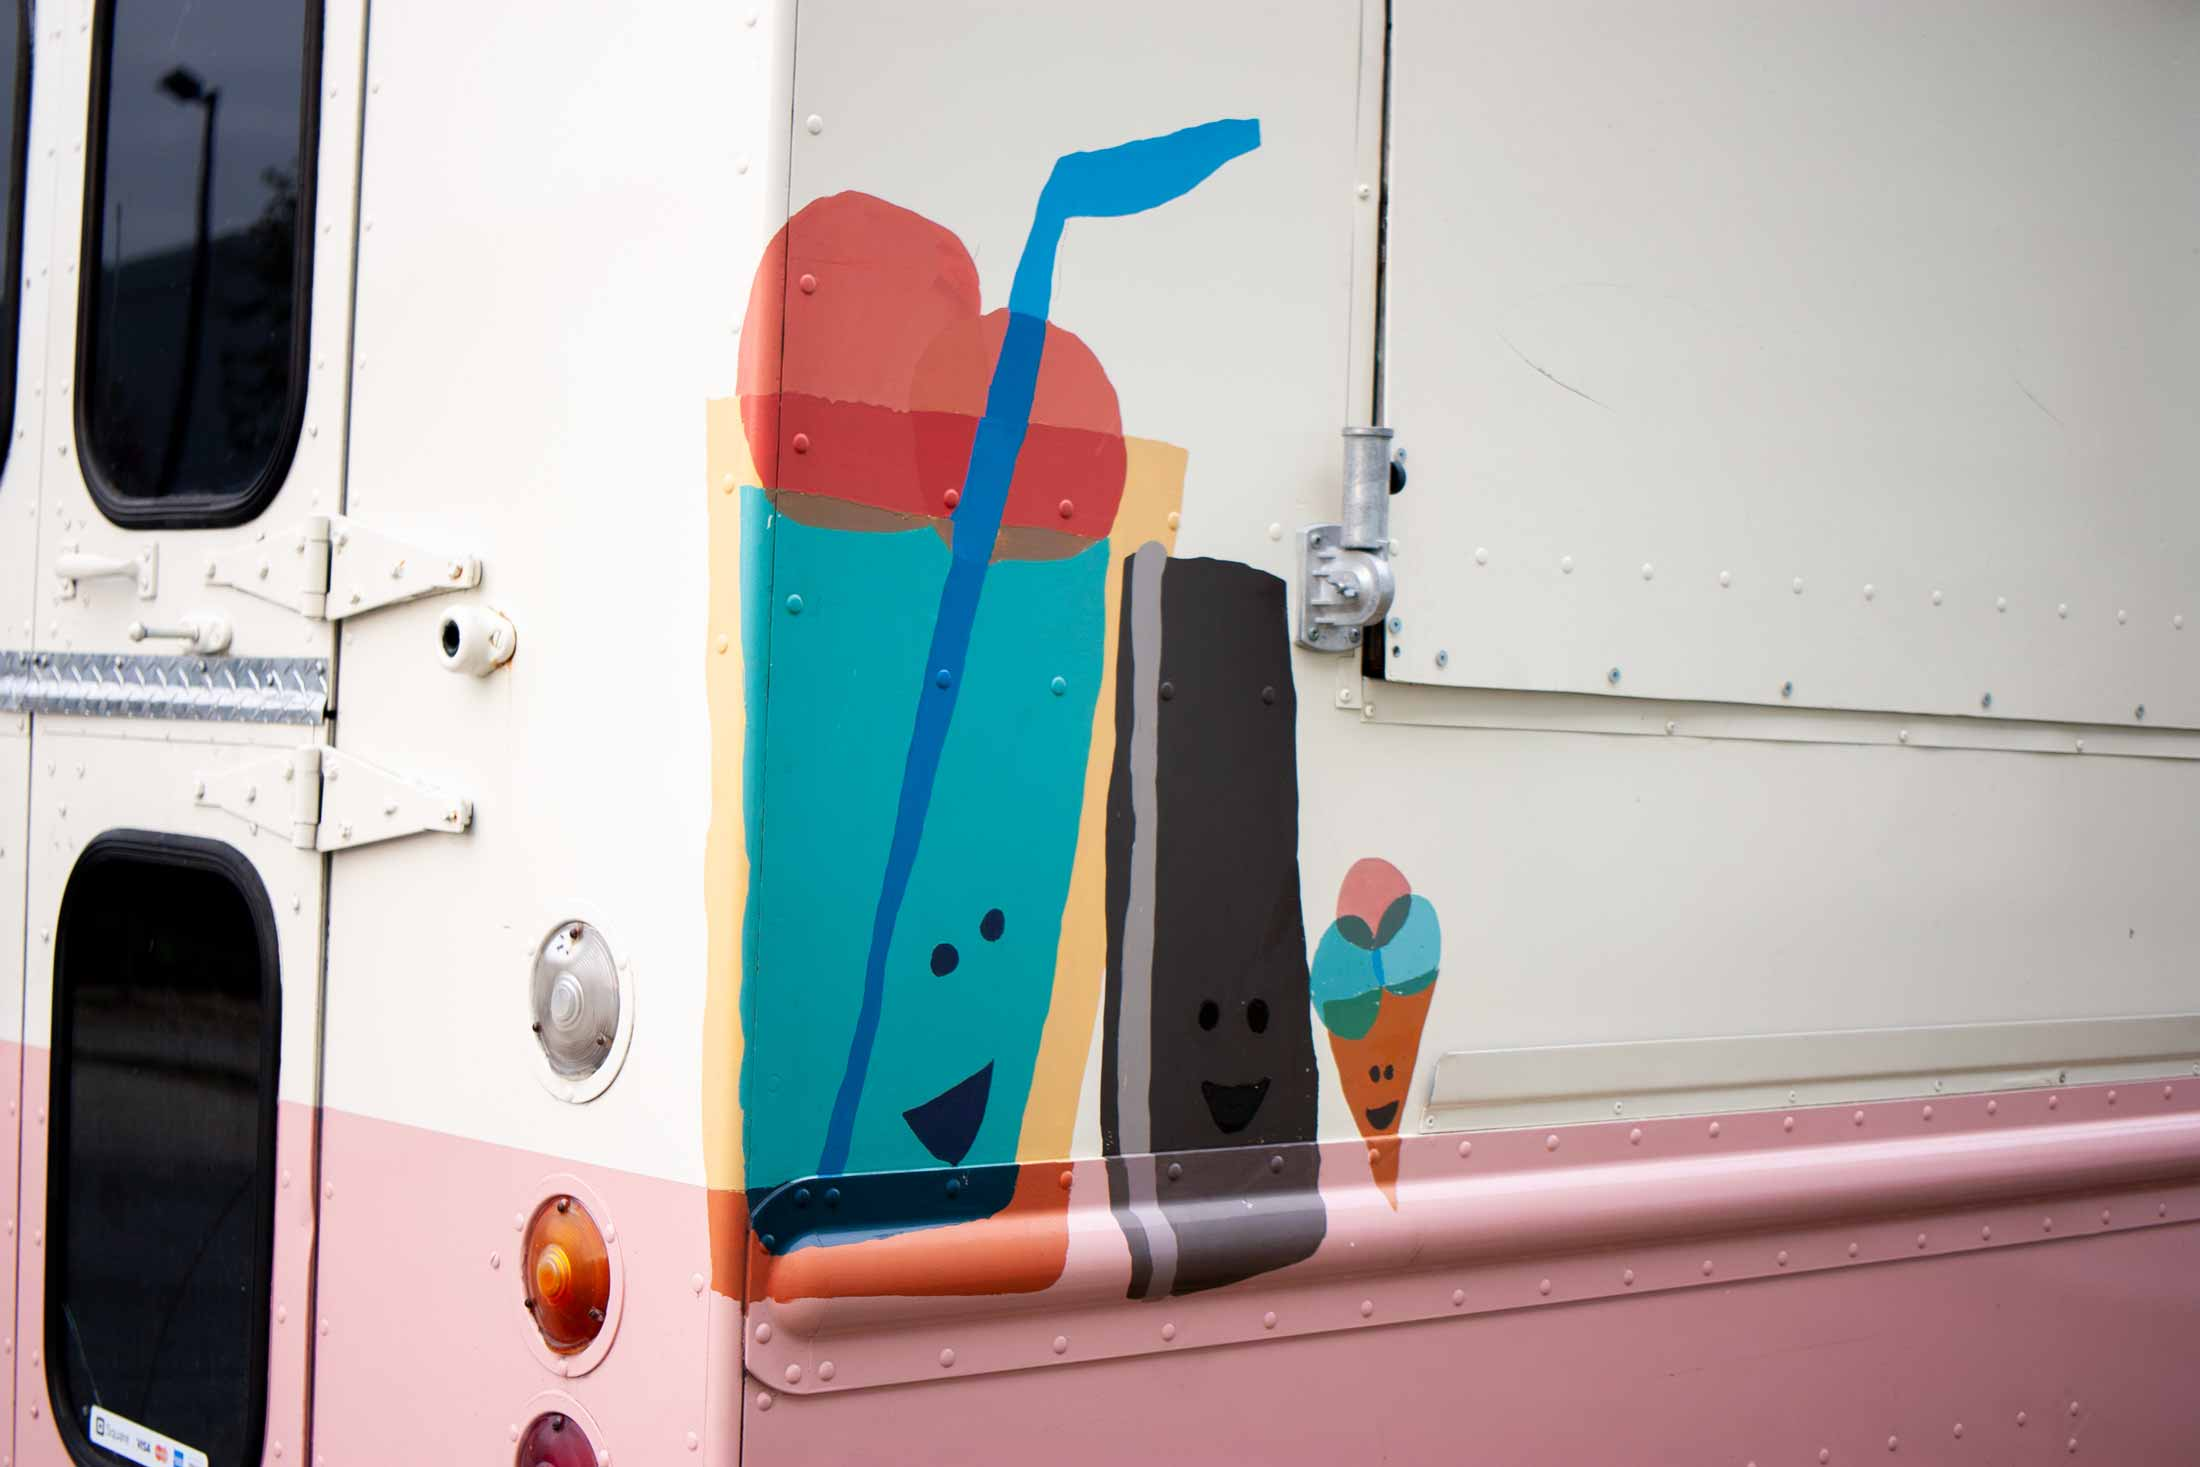 The opposite side of the truck featured illustrations of an ice cream float, sandwich and cone — by Yagnyuk.